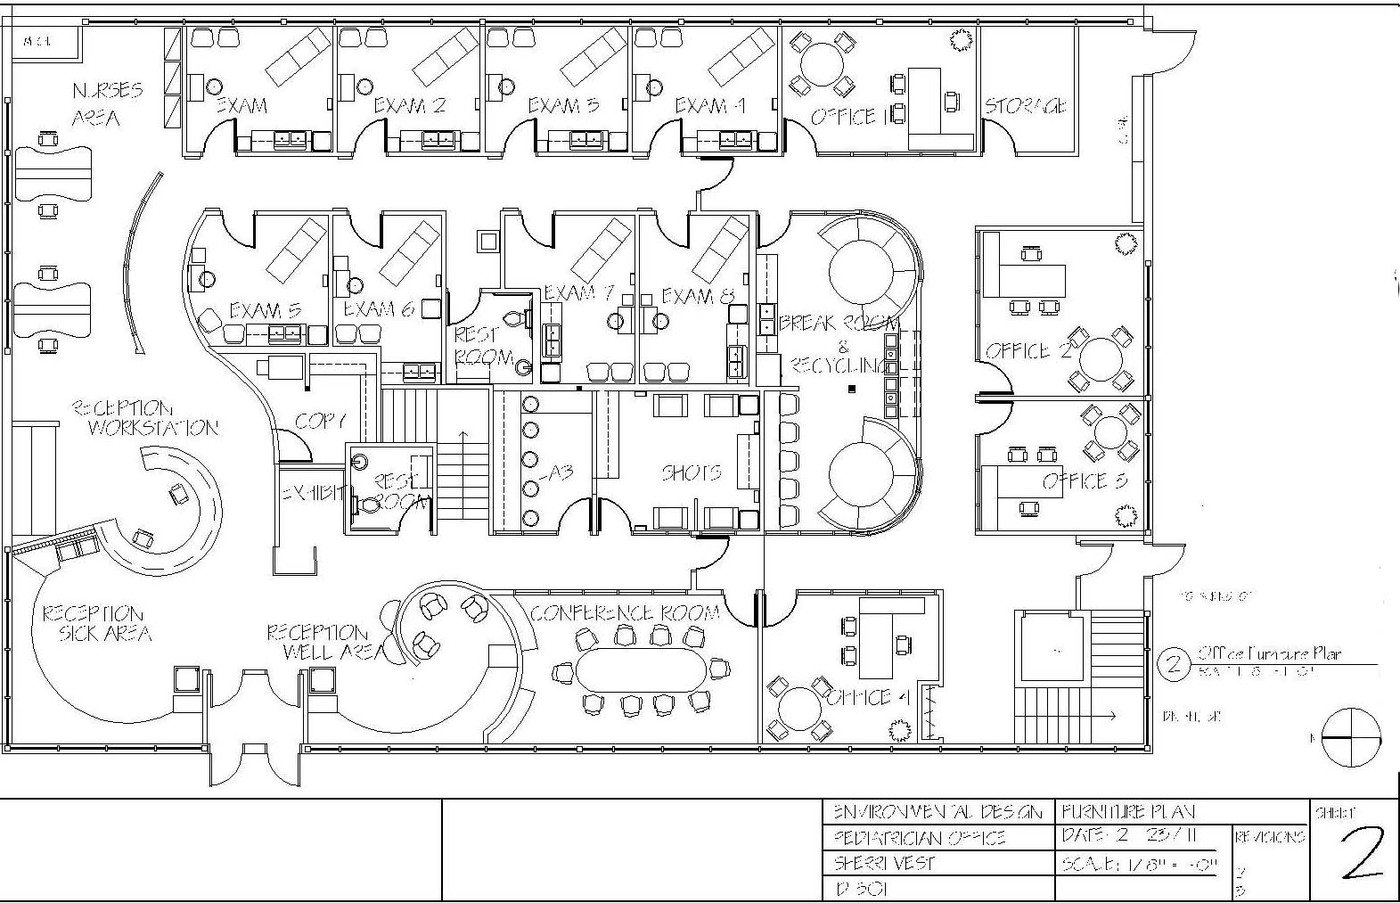 electrical plan for office